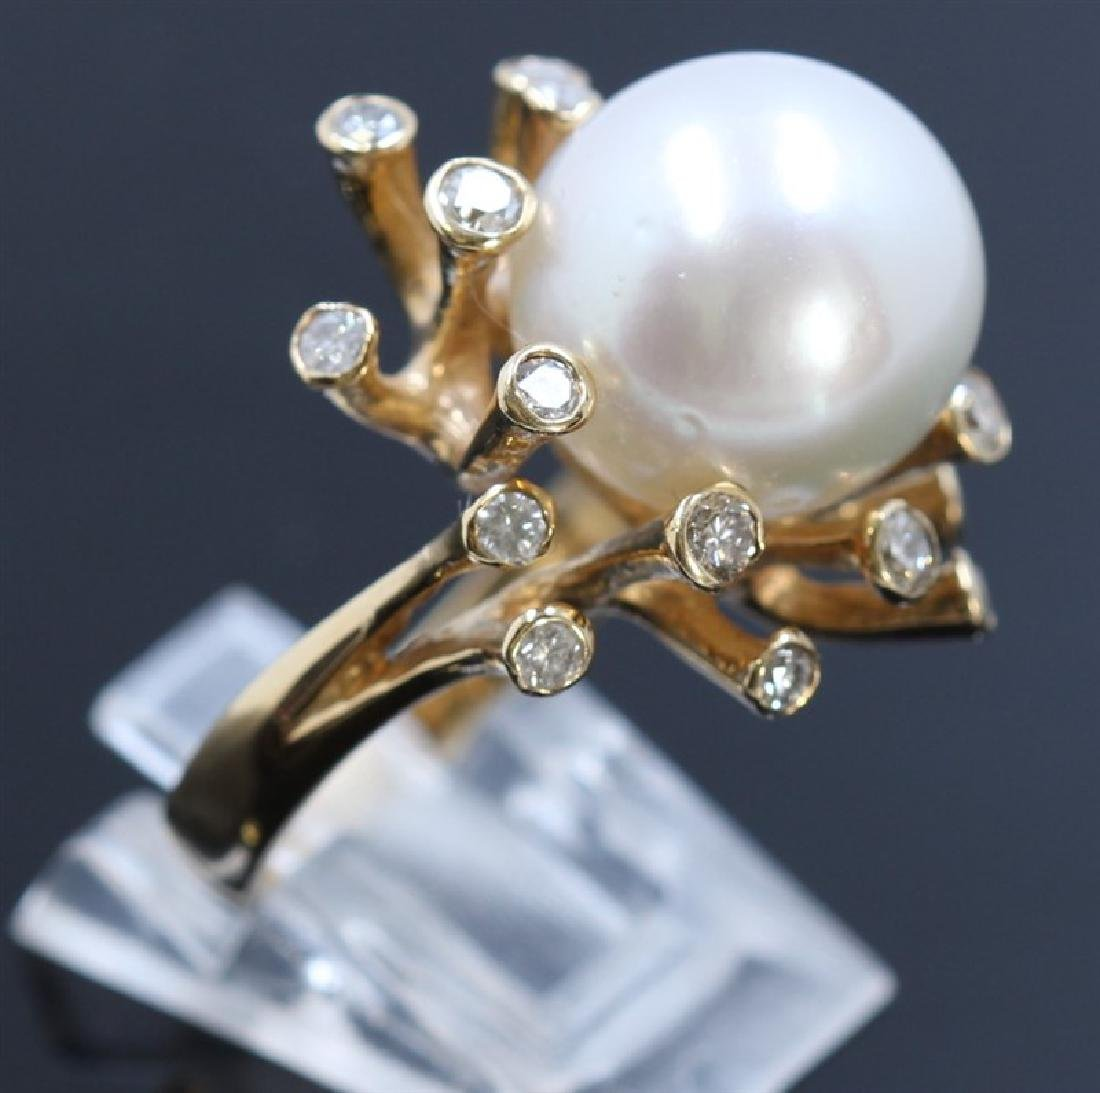 13.5mm South Sea Pearl 14K YellowGold Ring - 3